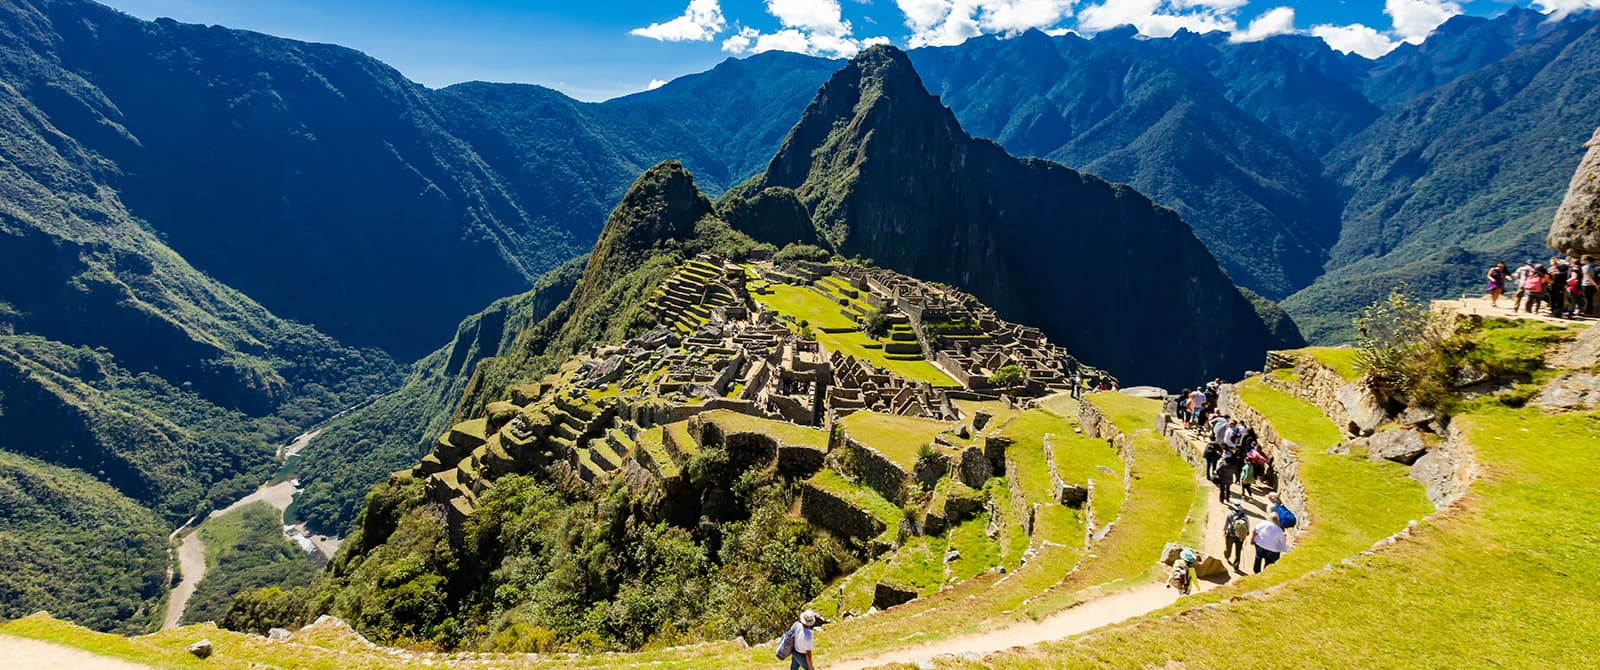 machu picchu archeological complex